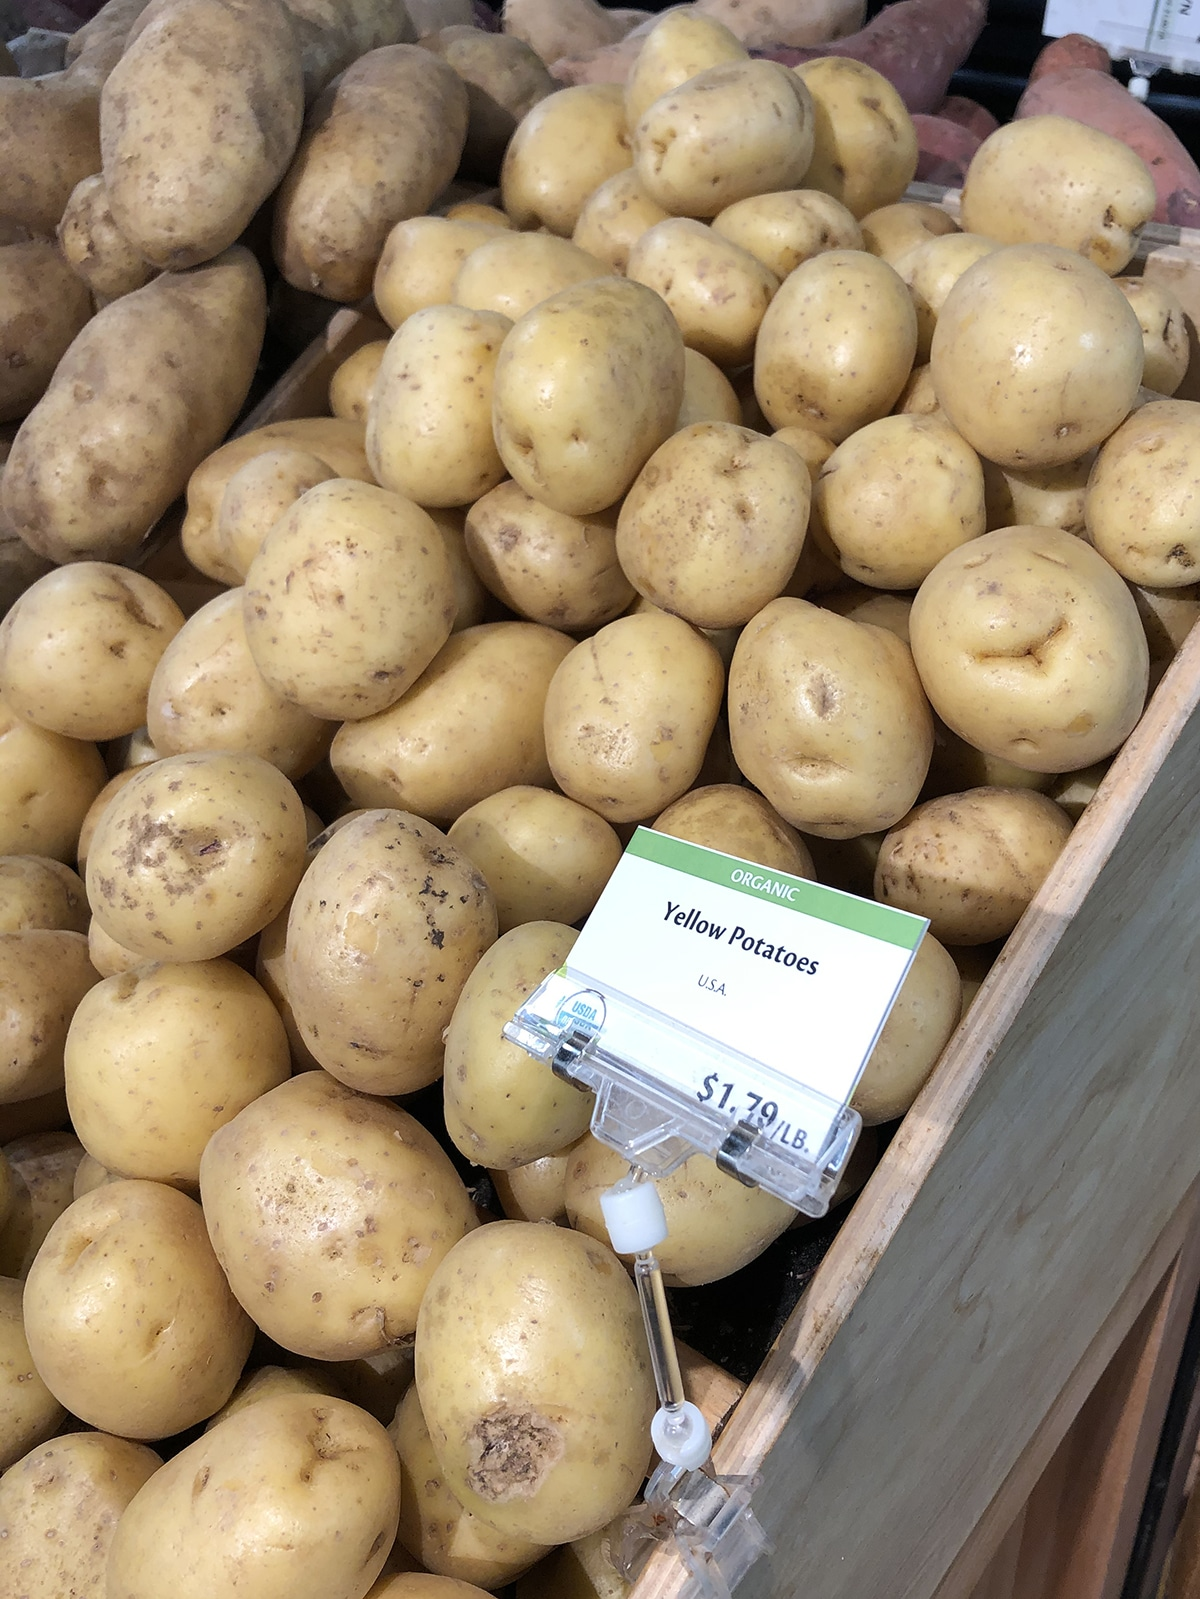 Yellow potatoes on display at grocery store.